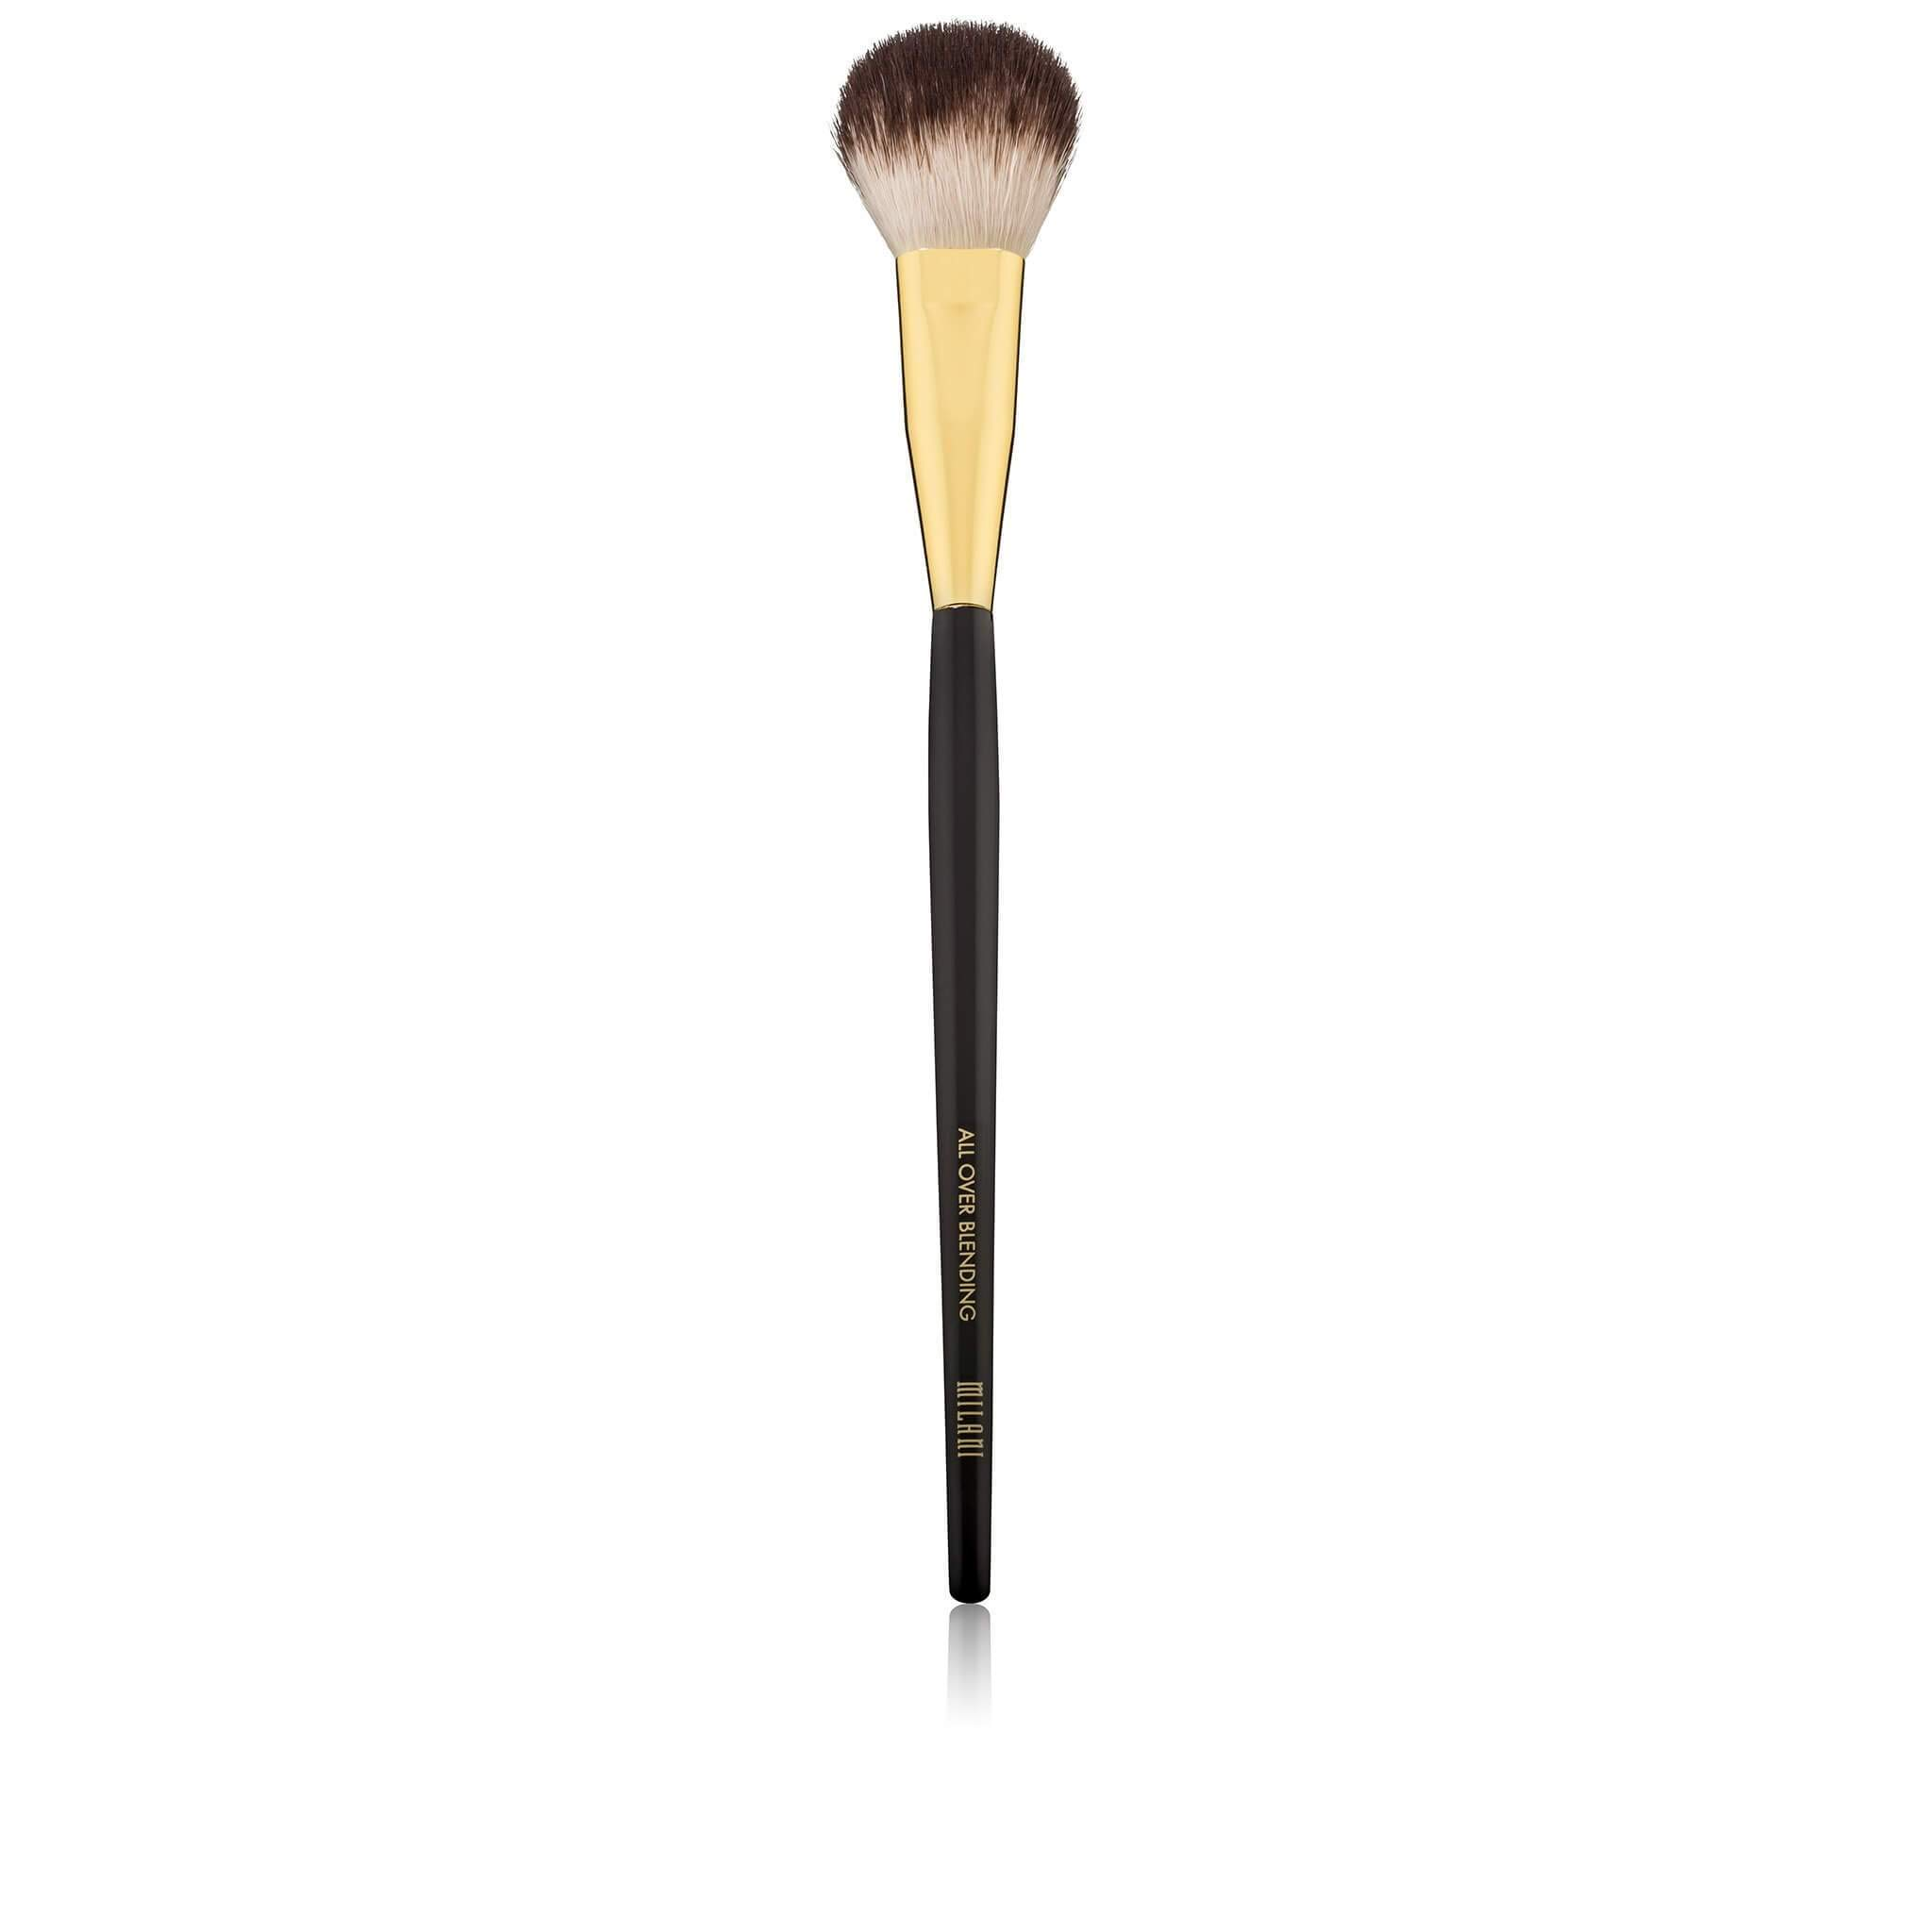 Milani Highlighter Blending Brush - Cruelty-Free Face & Eye Brush to Highlight & Contour - Made with High-Grade Synthetic Bristles